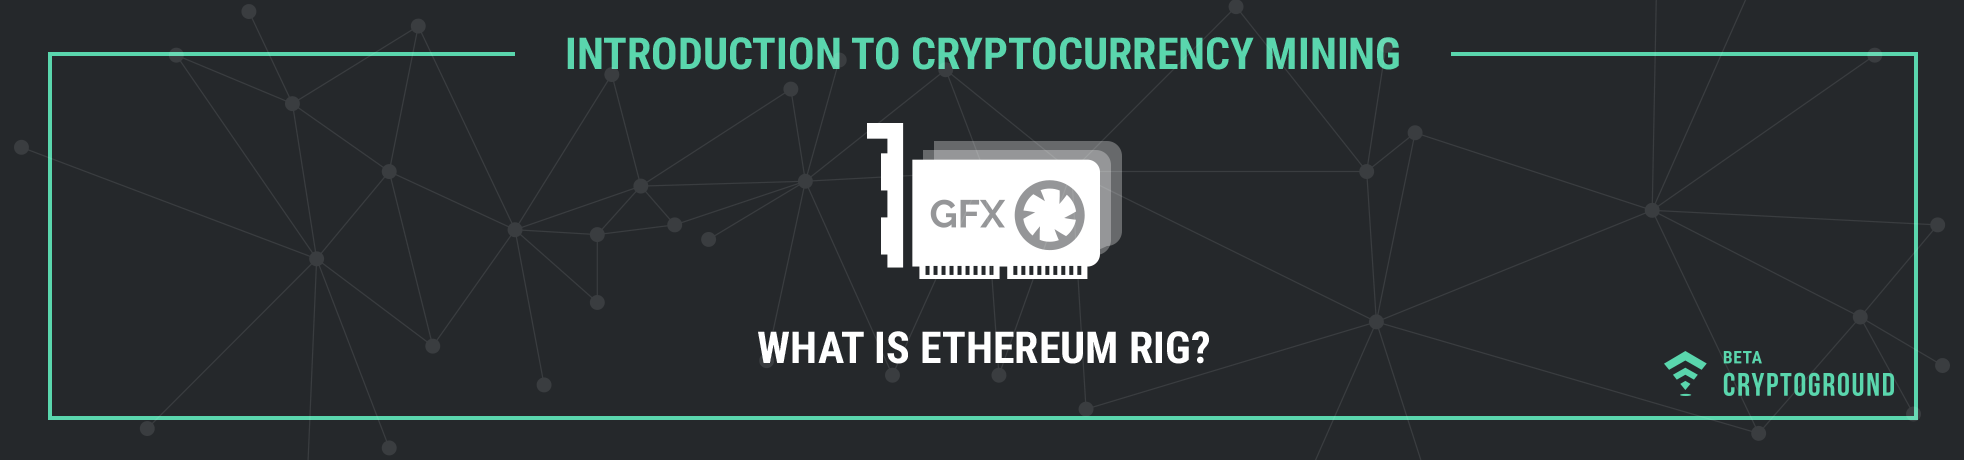 What is Ethereum Rig?